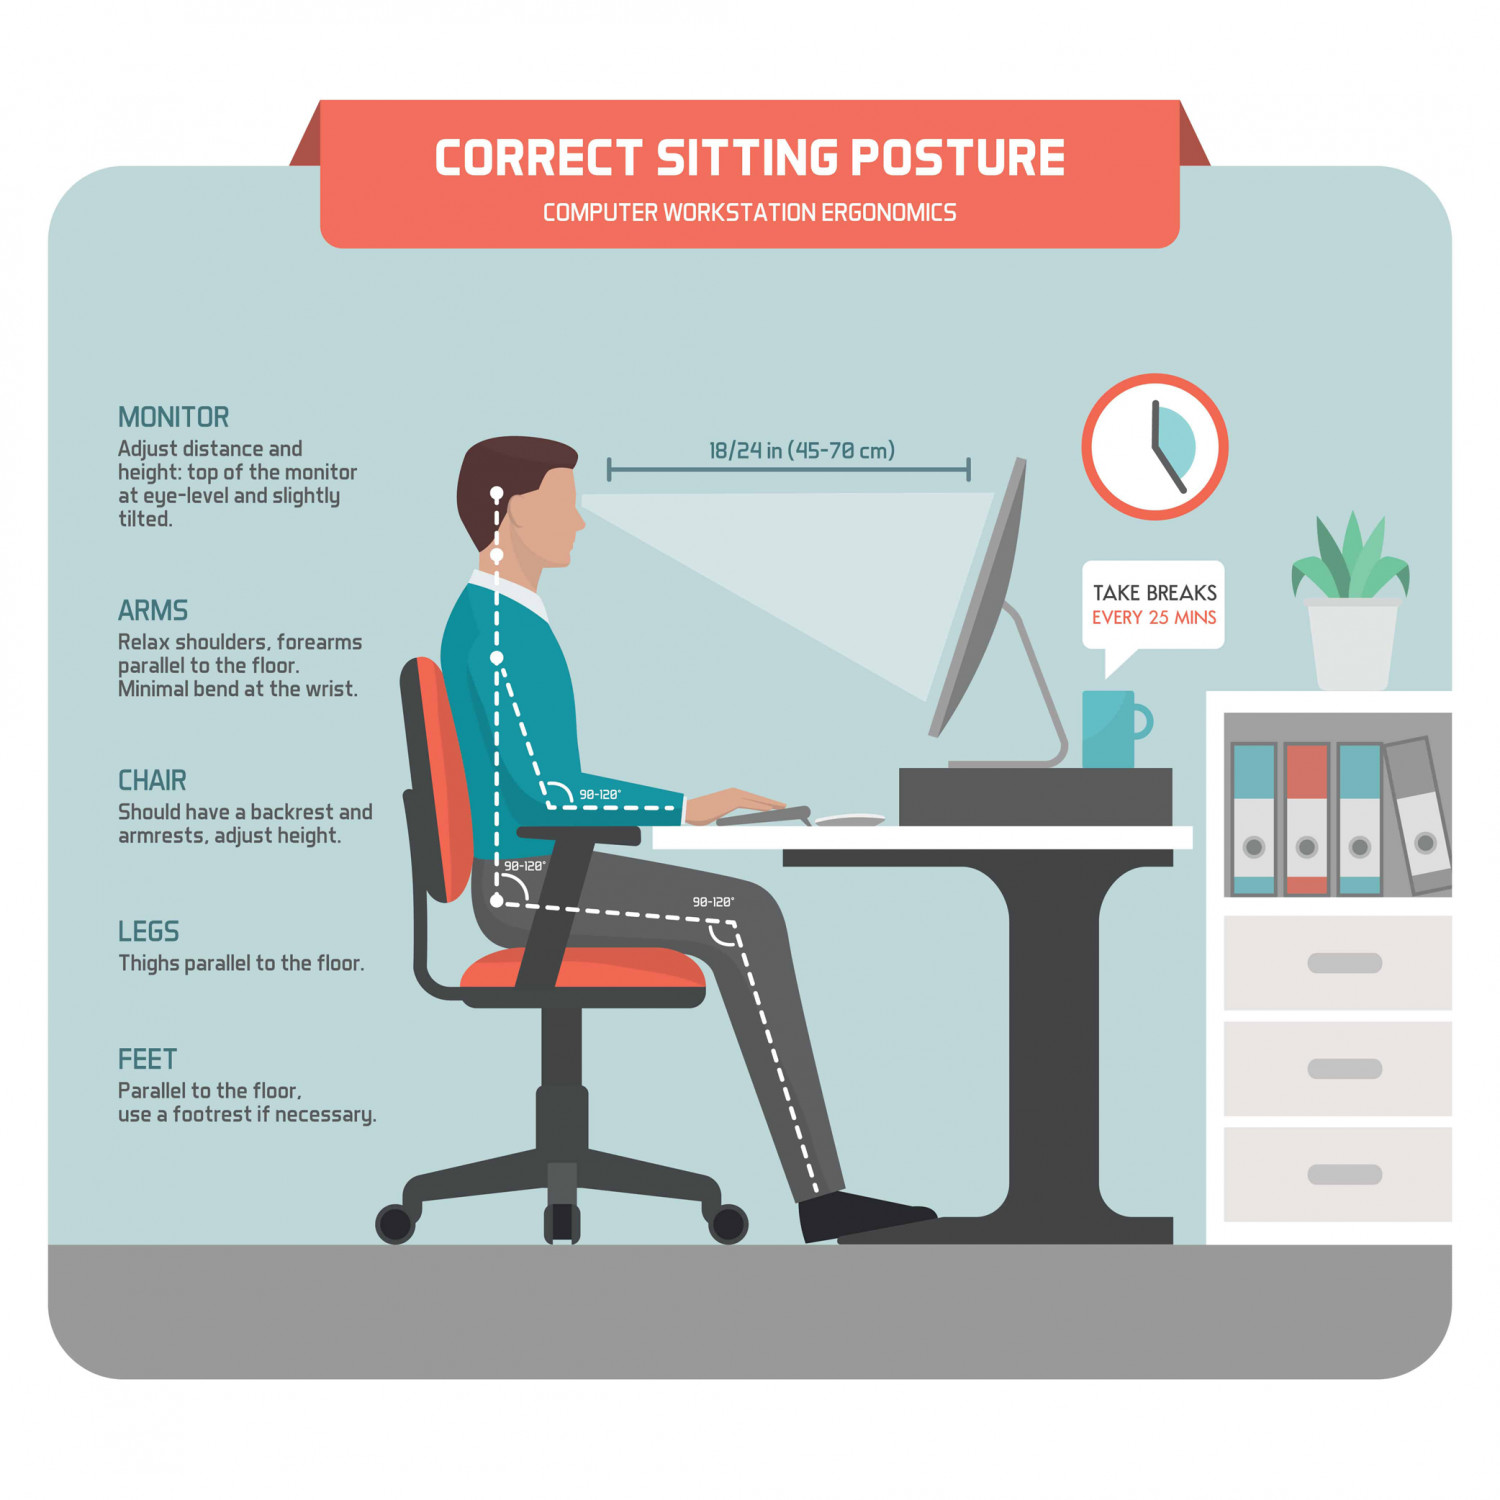 posture study chair red nwpa review correct sitting on computer desk | visual.ly